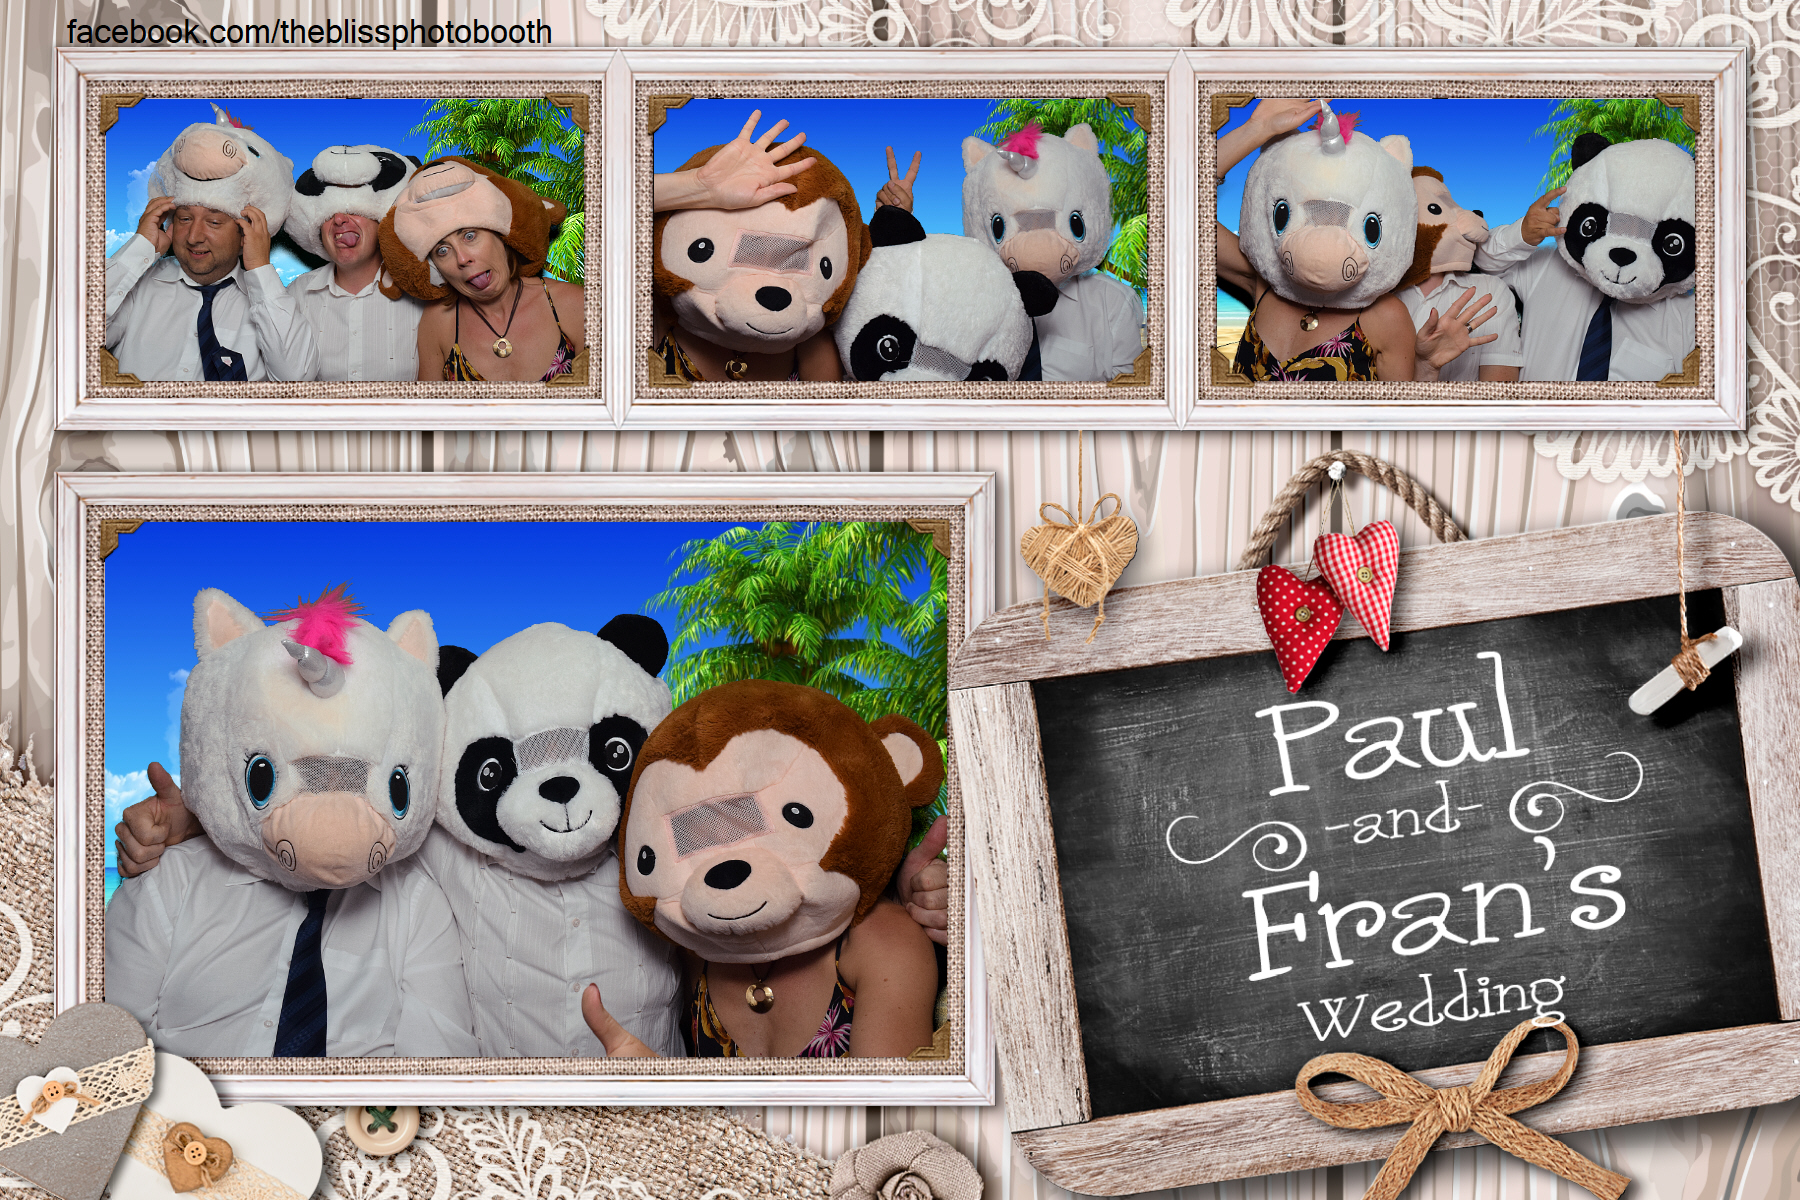 Paul and Fran - DoubleTree by Hilton Sheffield - Photo Booth